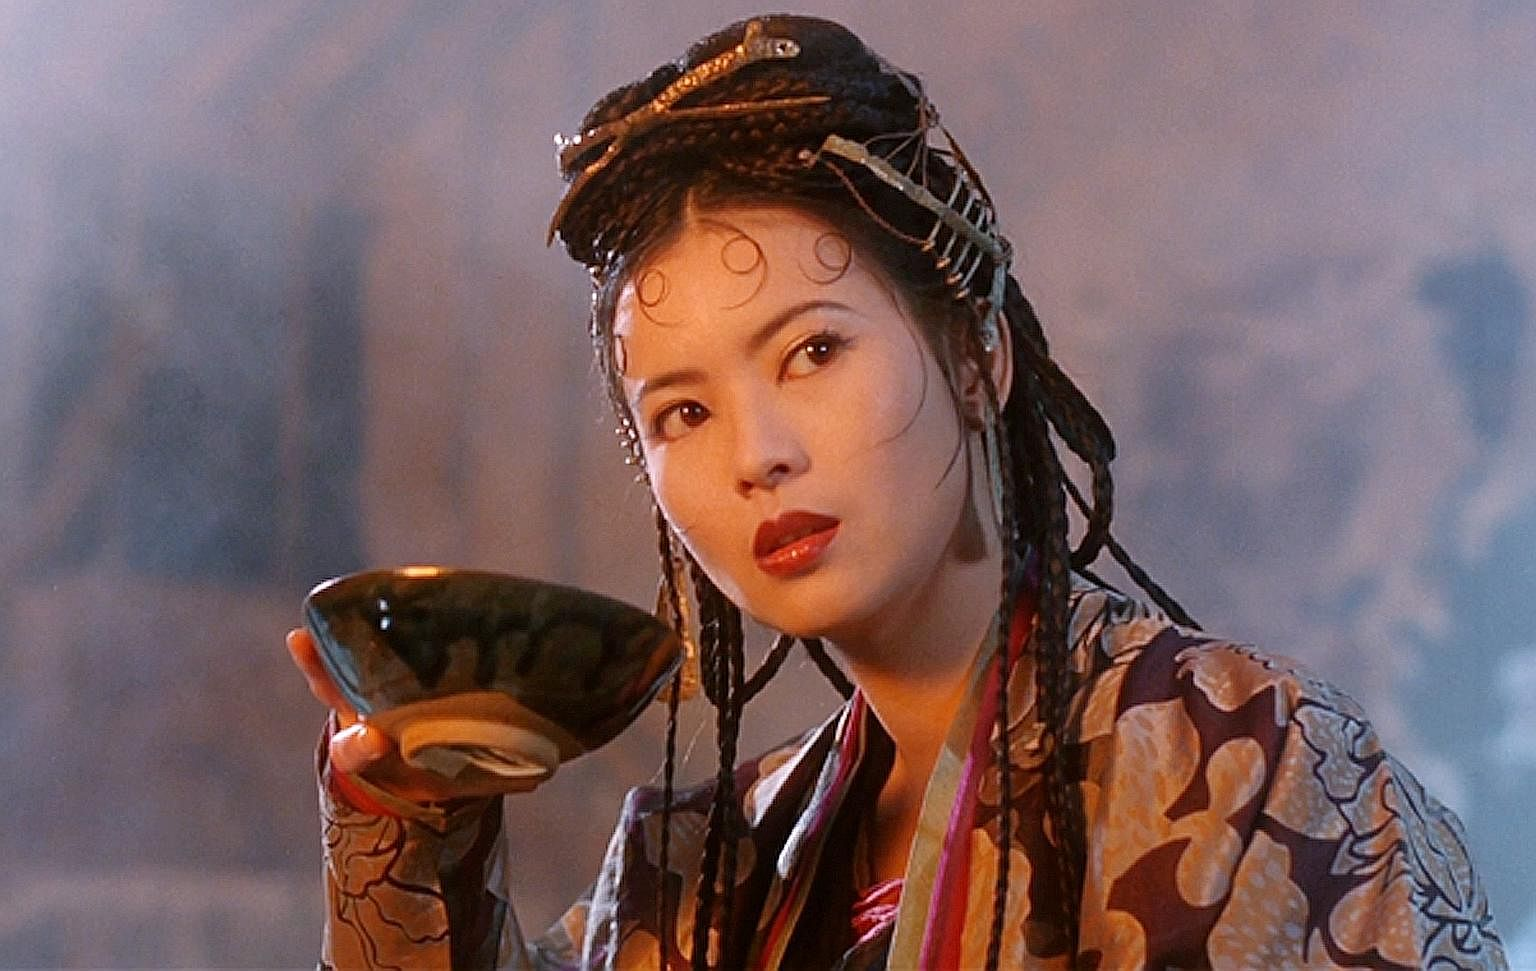 Former Hong Kong actress Yammie Lam found dead at home